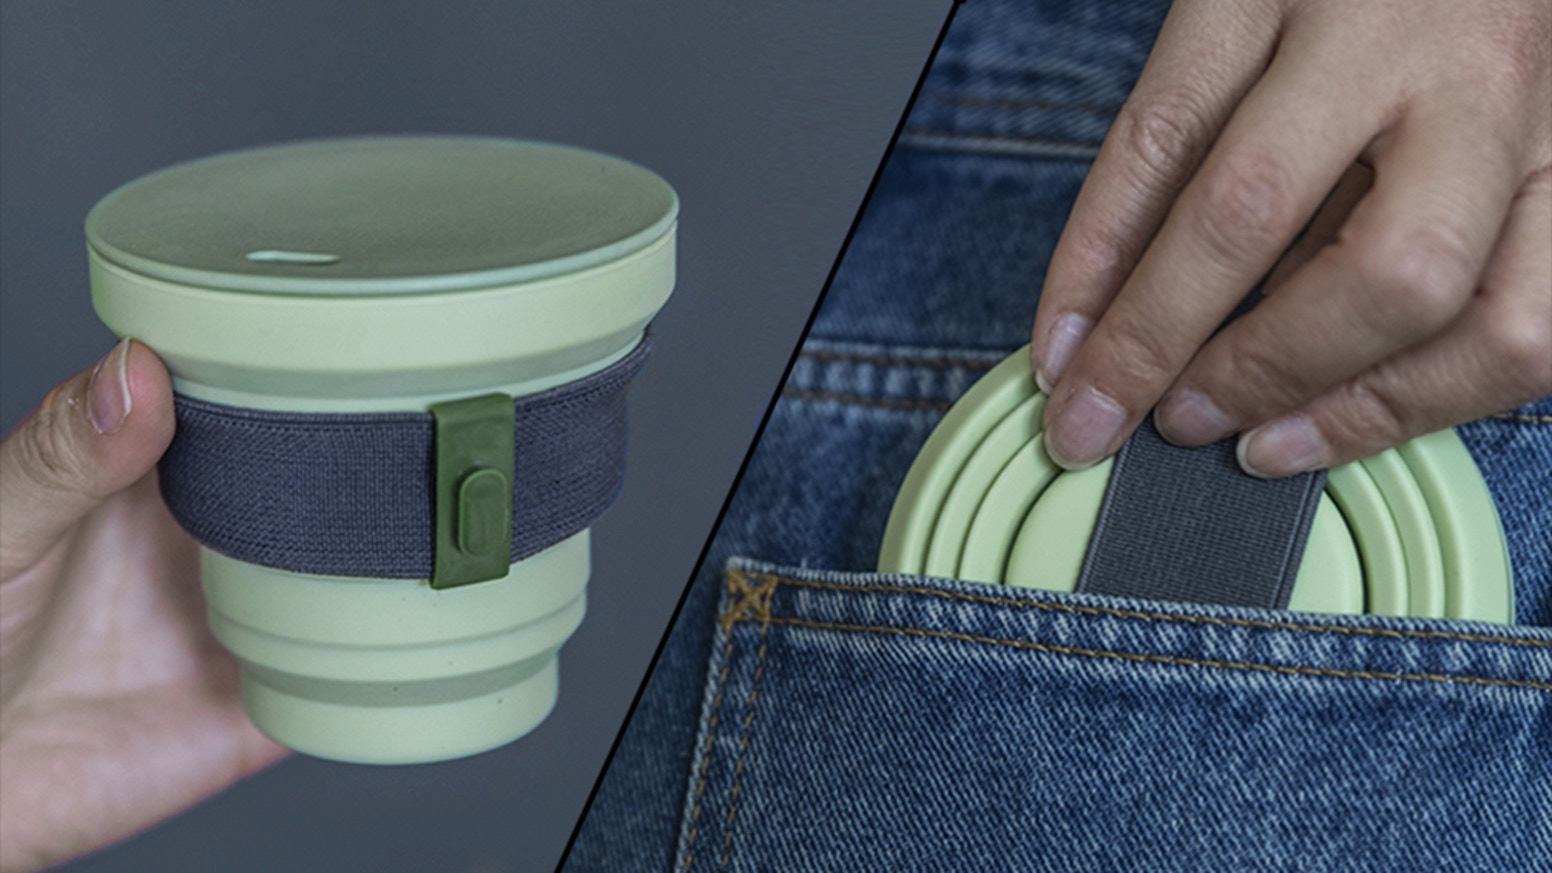 A beautifully designed reusable cup that folds down small enough to fit in any pocket or bag.